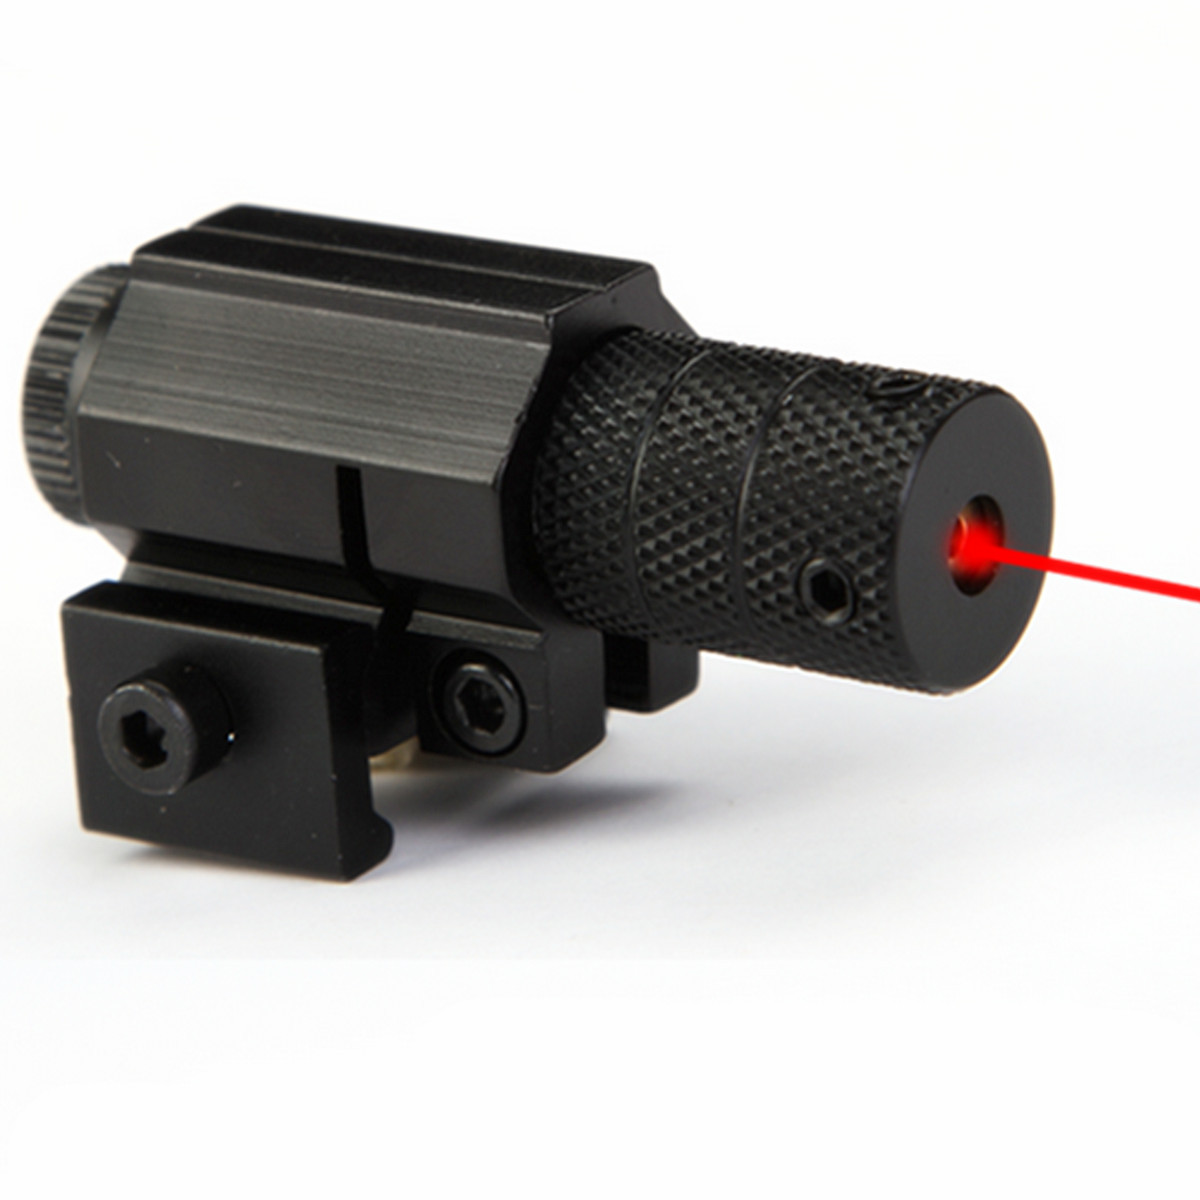 100m 835-655mm Tactical Aiming Red Beam Dot Laser Bore Sight Scope With Mount for Gun Rifle Pistol